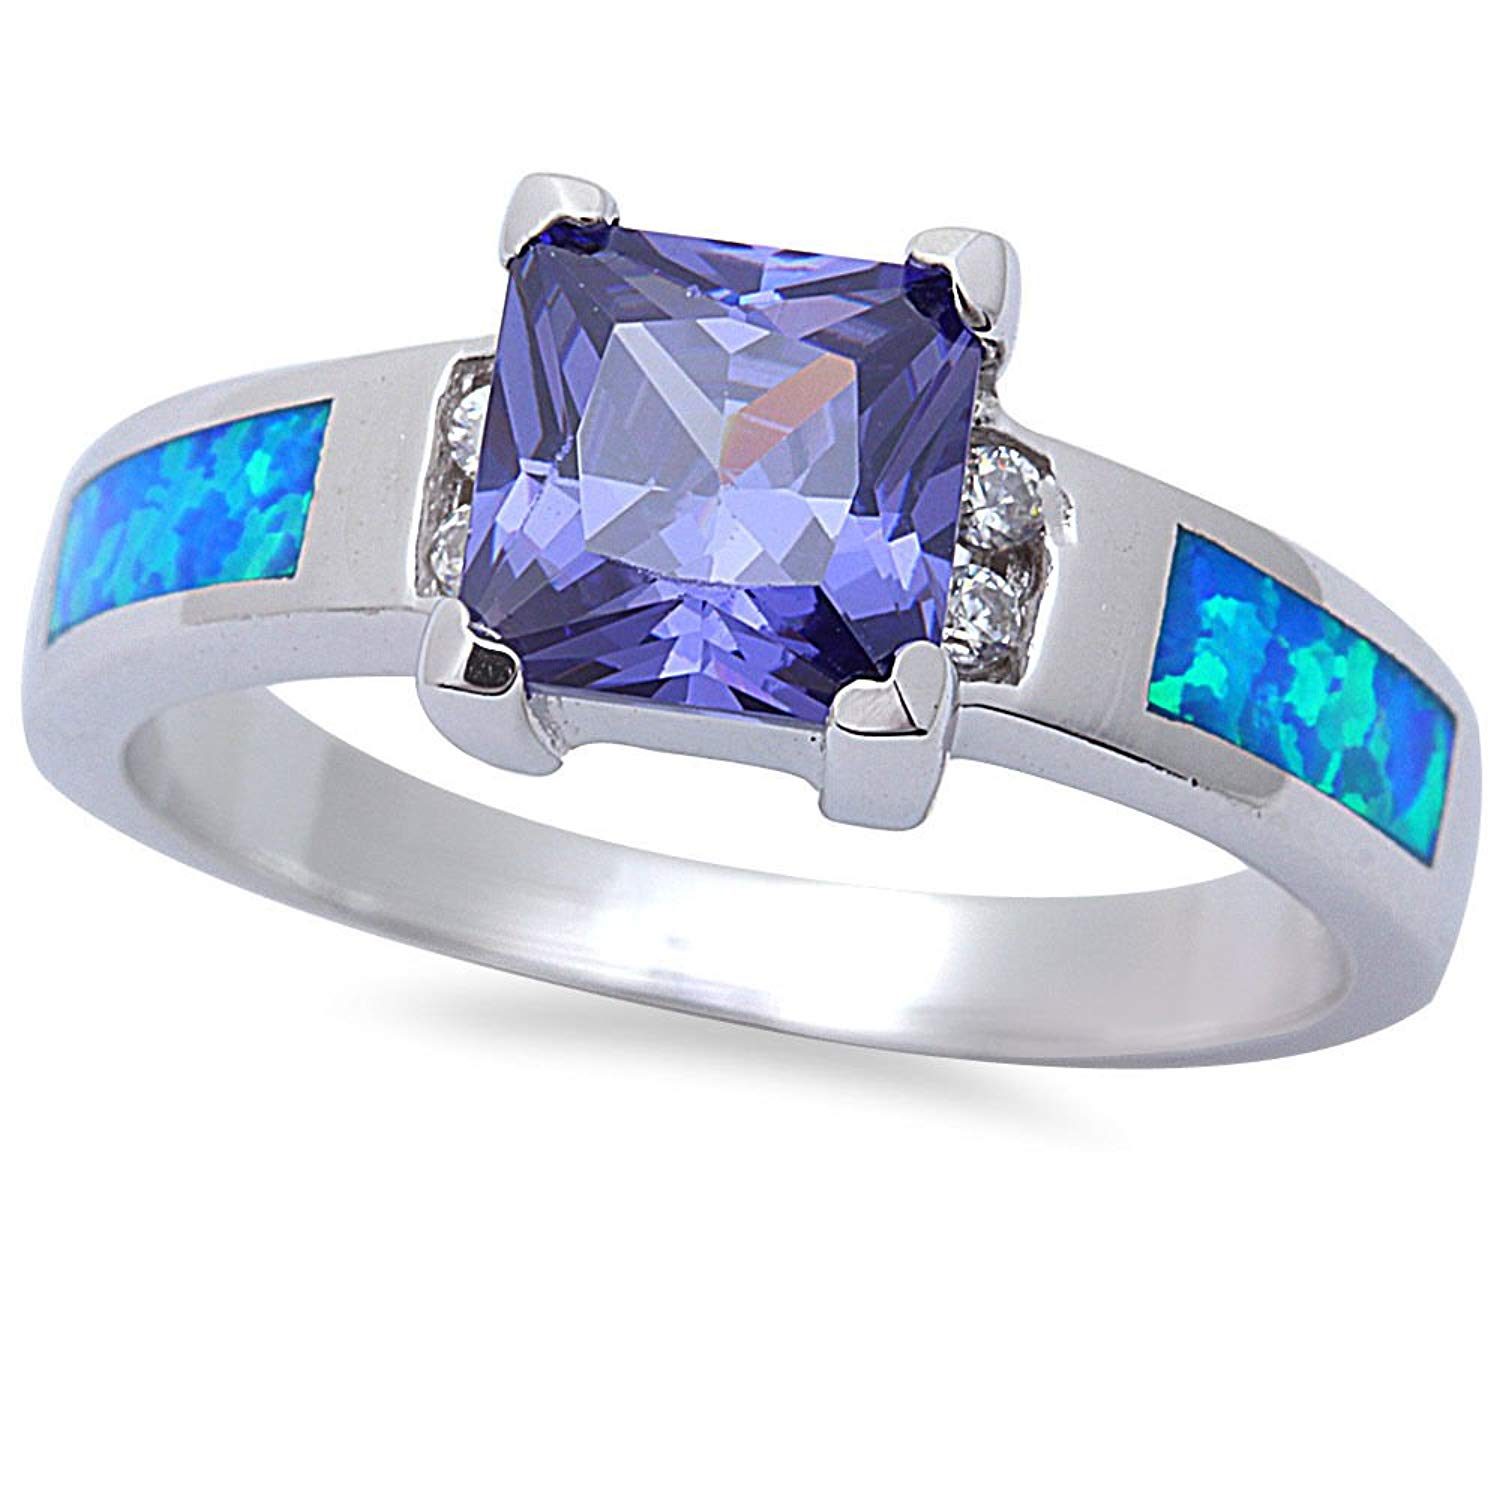 Princess Cut Simulated Tanzanite, CZ, & Lab Created Blue Opal .925 Sterling Silver Ring SIZES 5-9